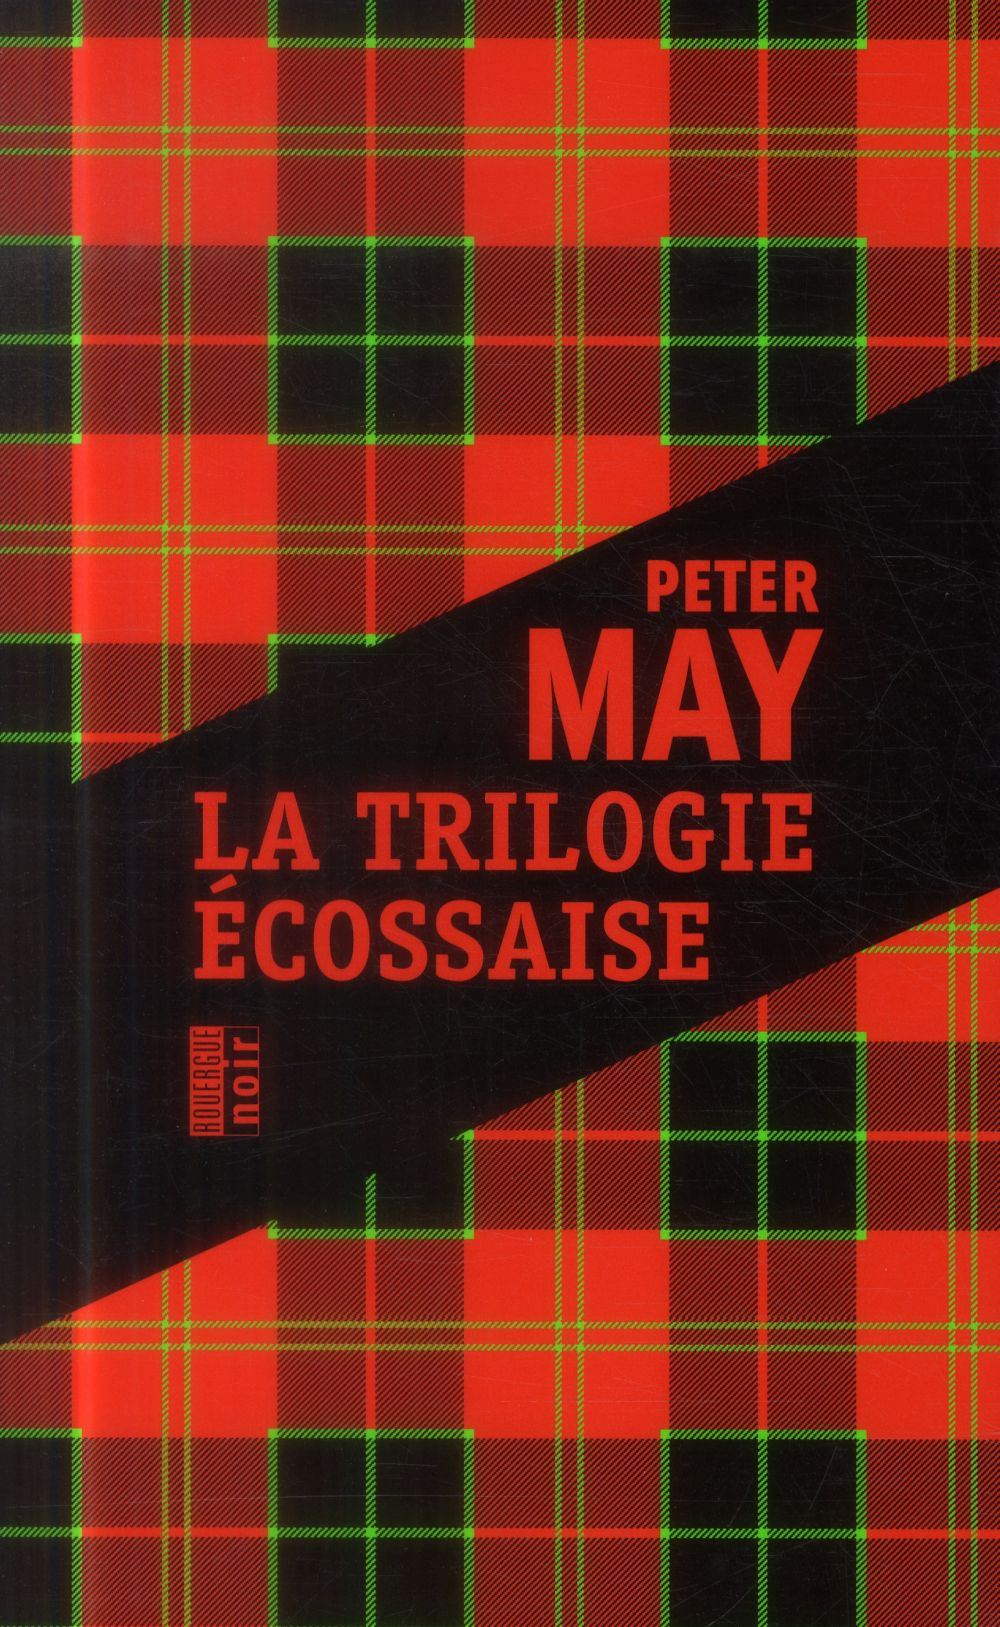 LA TRILOGIE ECOSSAISE May Peter Rouergue